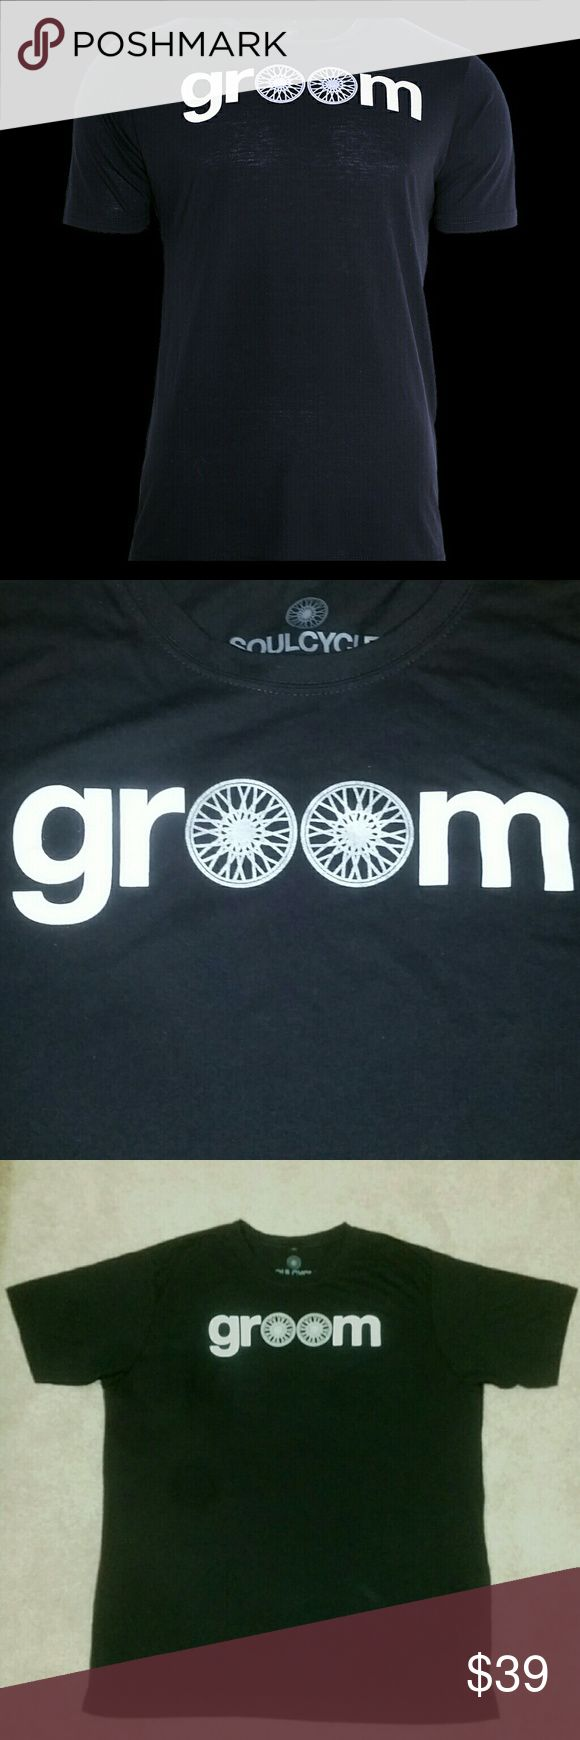 "🆕 🛍NWT🛍 SoulCycle Groom Tee Must-have for any SoulCycle Bachelor. NWT black t-shirt that my husband never got to wear! ""Groom"" screenprint with shimmery silver (like a wedding ring) wheel detail. Size XXL. Check out my separate listings for the bride tank and the Mr. and Mrs. SoulCycle Bundle. soulcycle Shirts Tees - Short Sleeve"